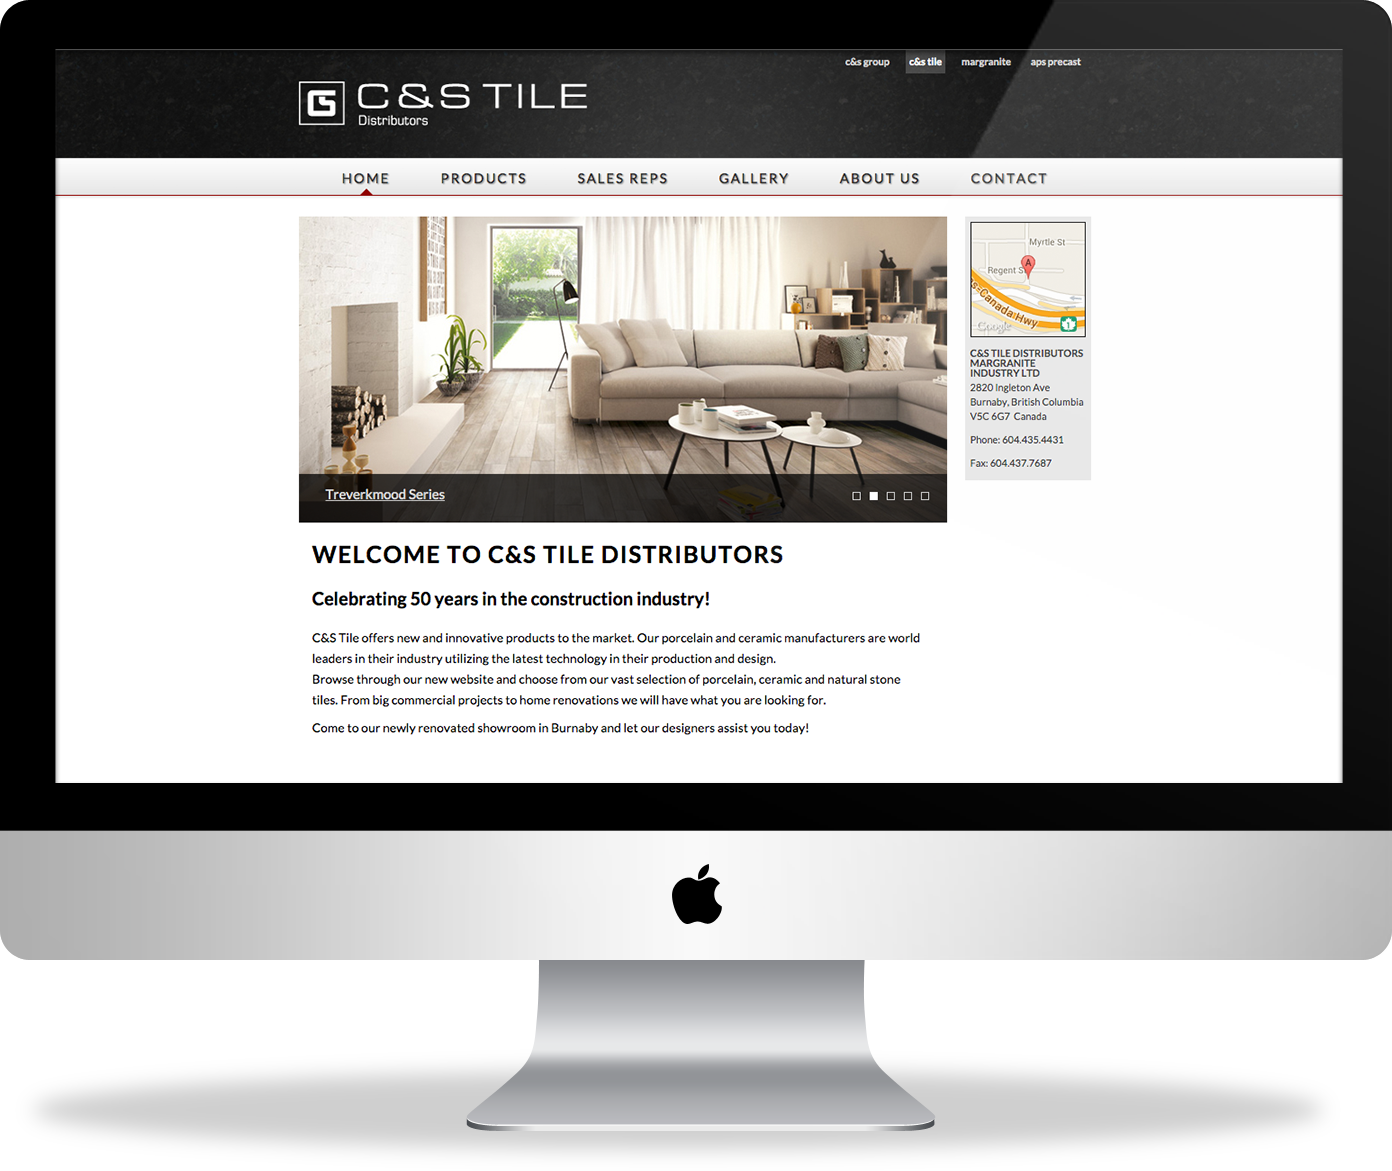 C&S Tile website - homepage